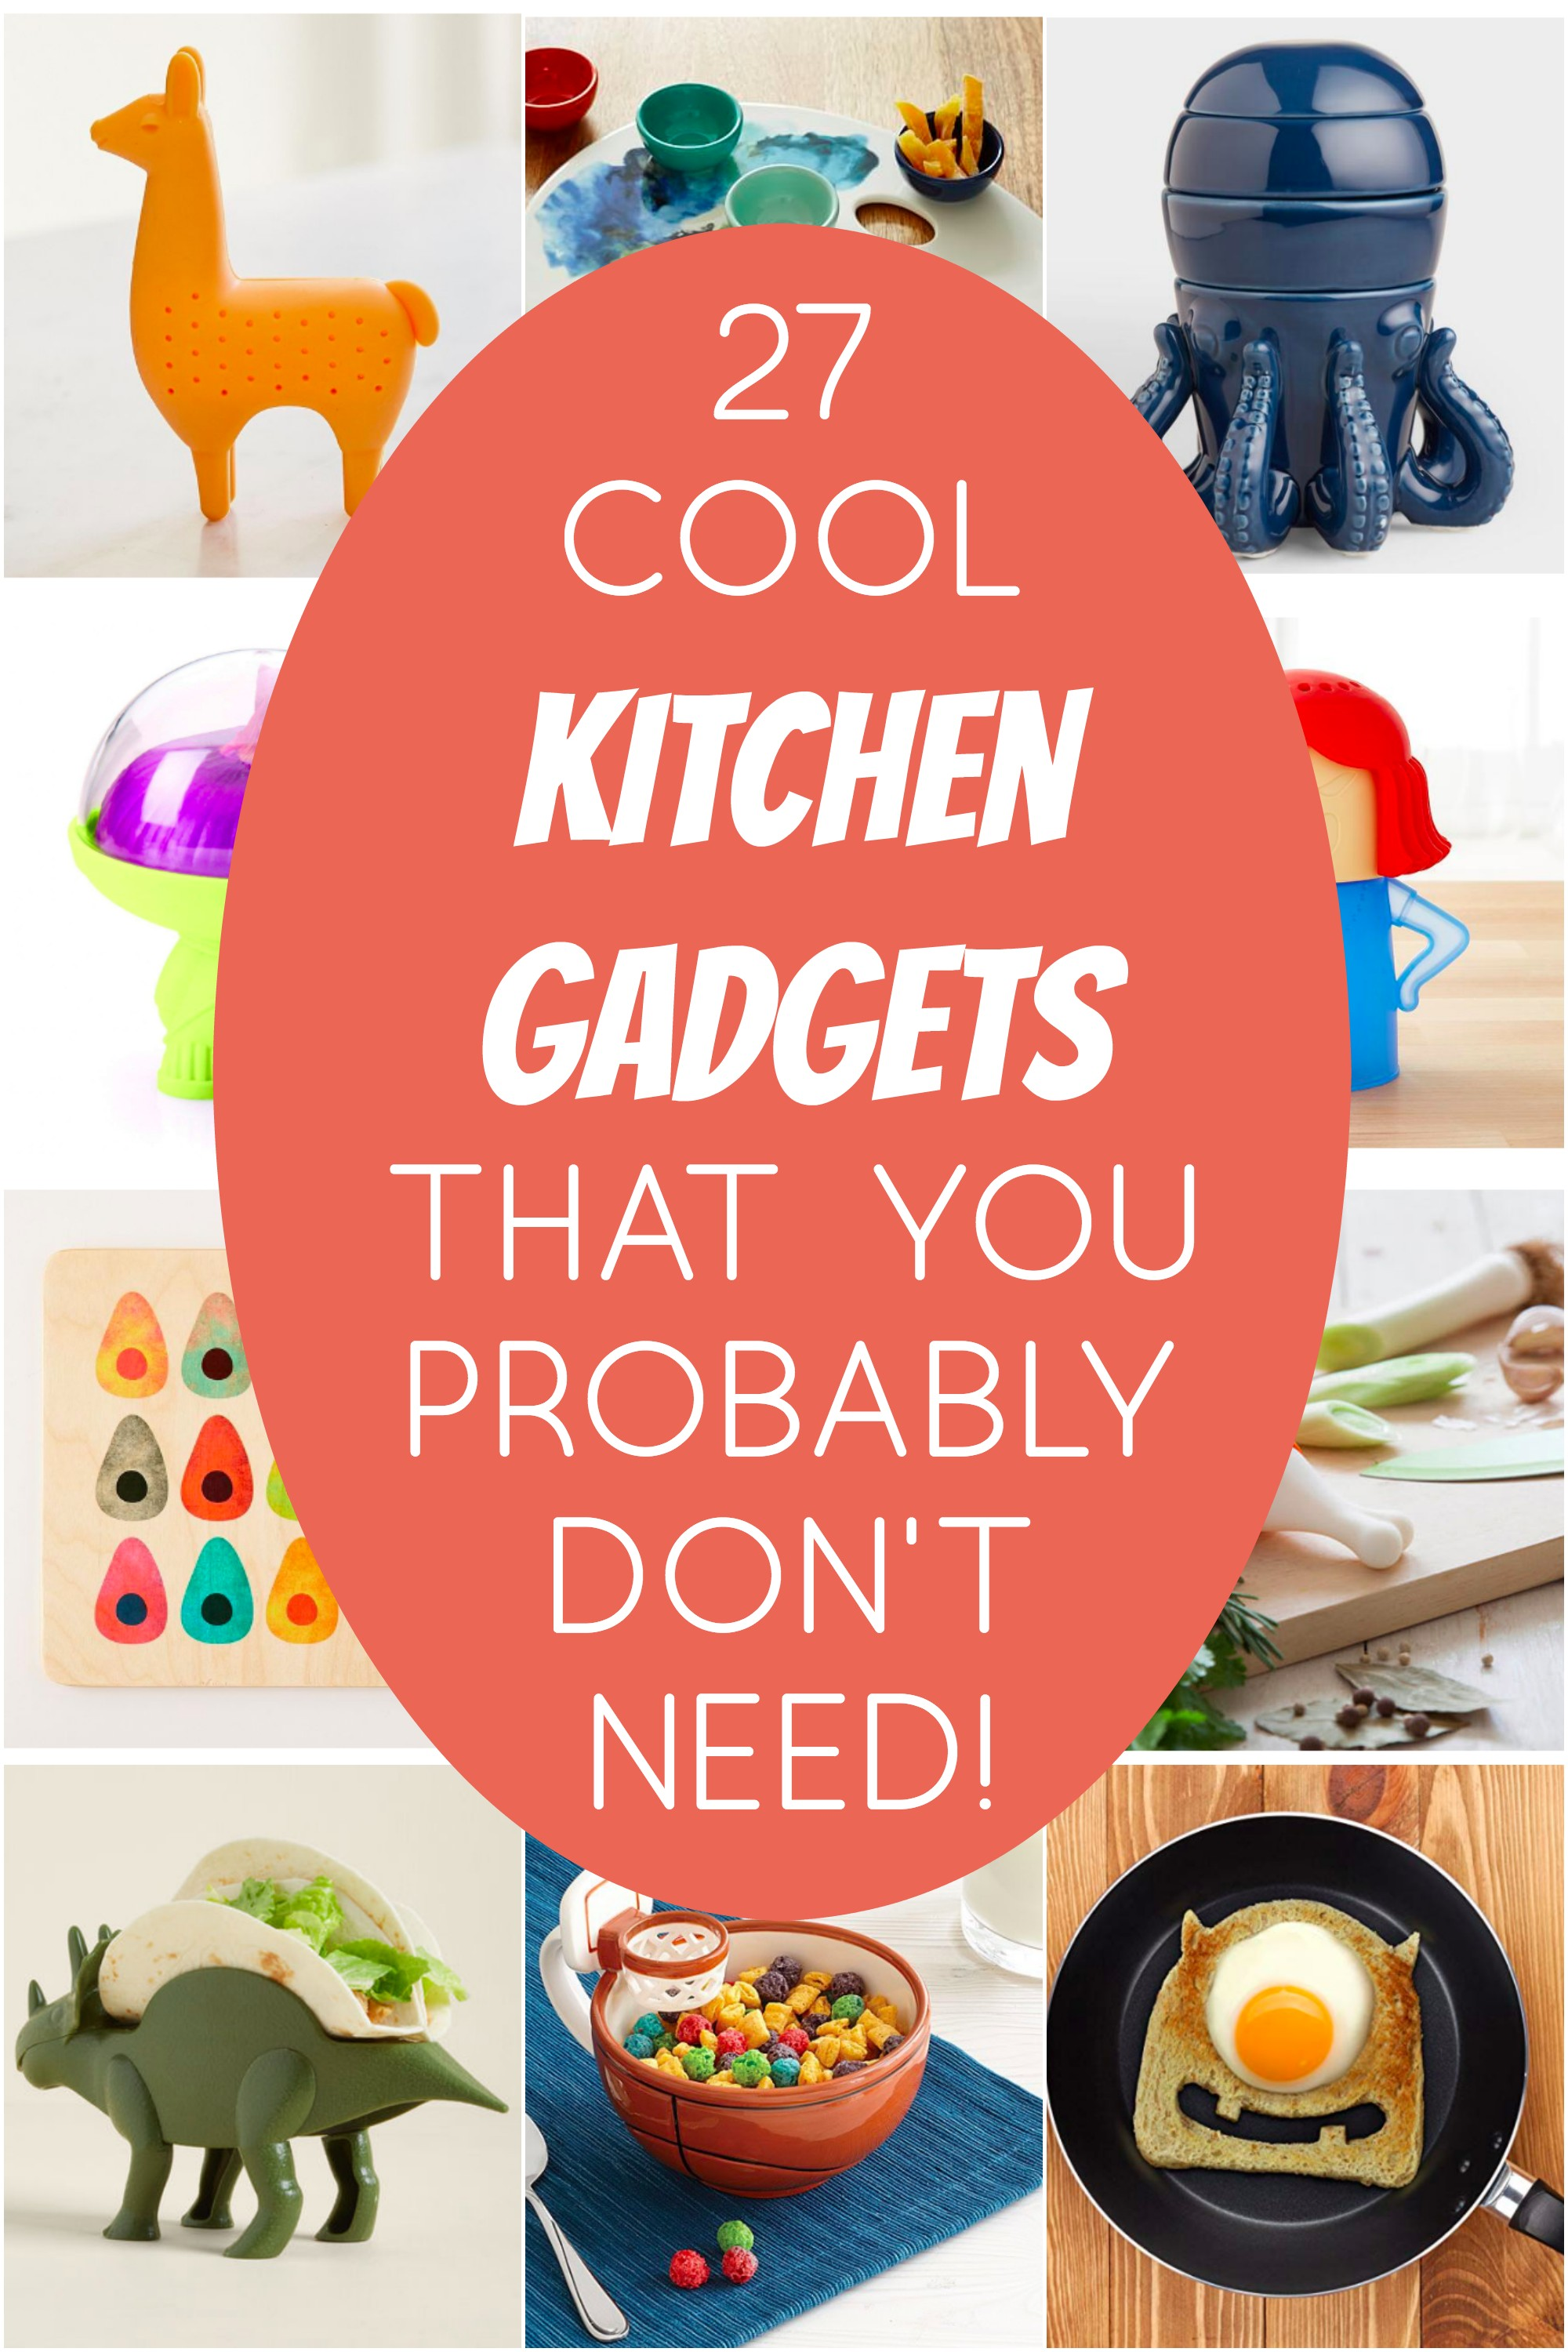 Every find yourself browsing online and stumbling on all sorts of gadgets that are totally unnecessary? Yup, me too. So I compiled 27 cool kitchen gadgets into one list of items you likely have no use for! Haha!